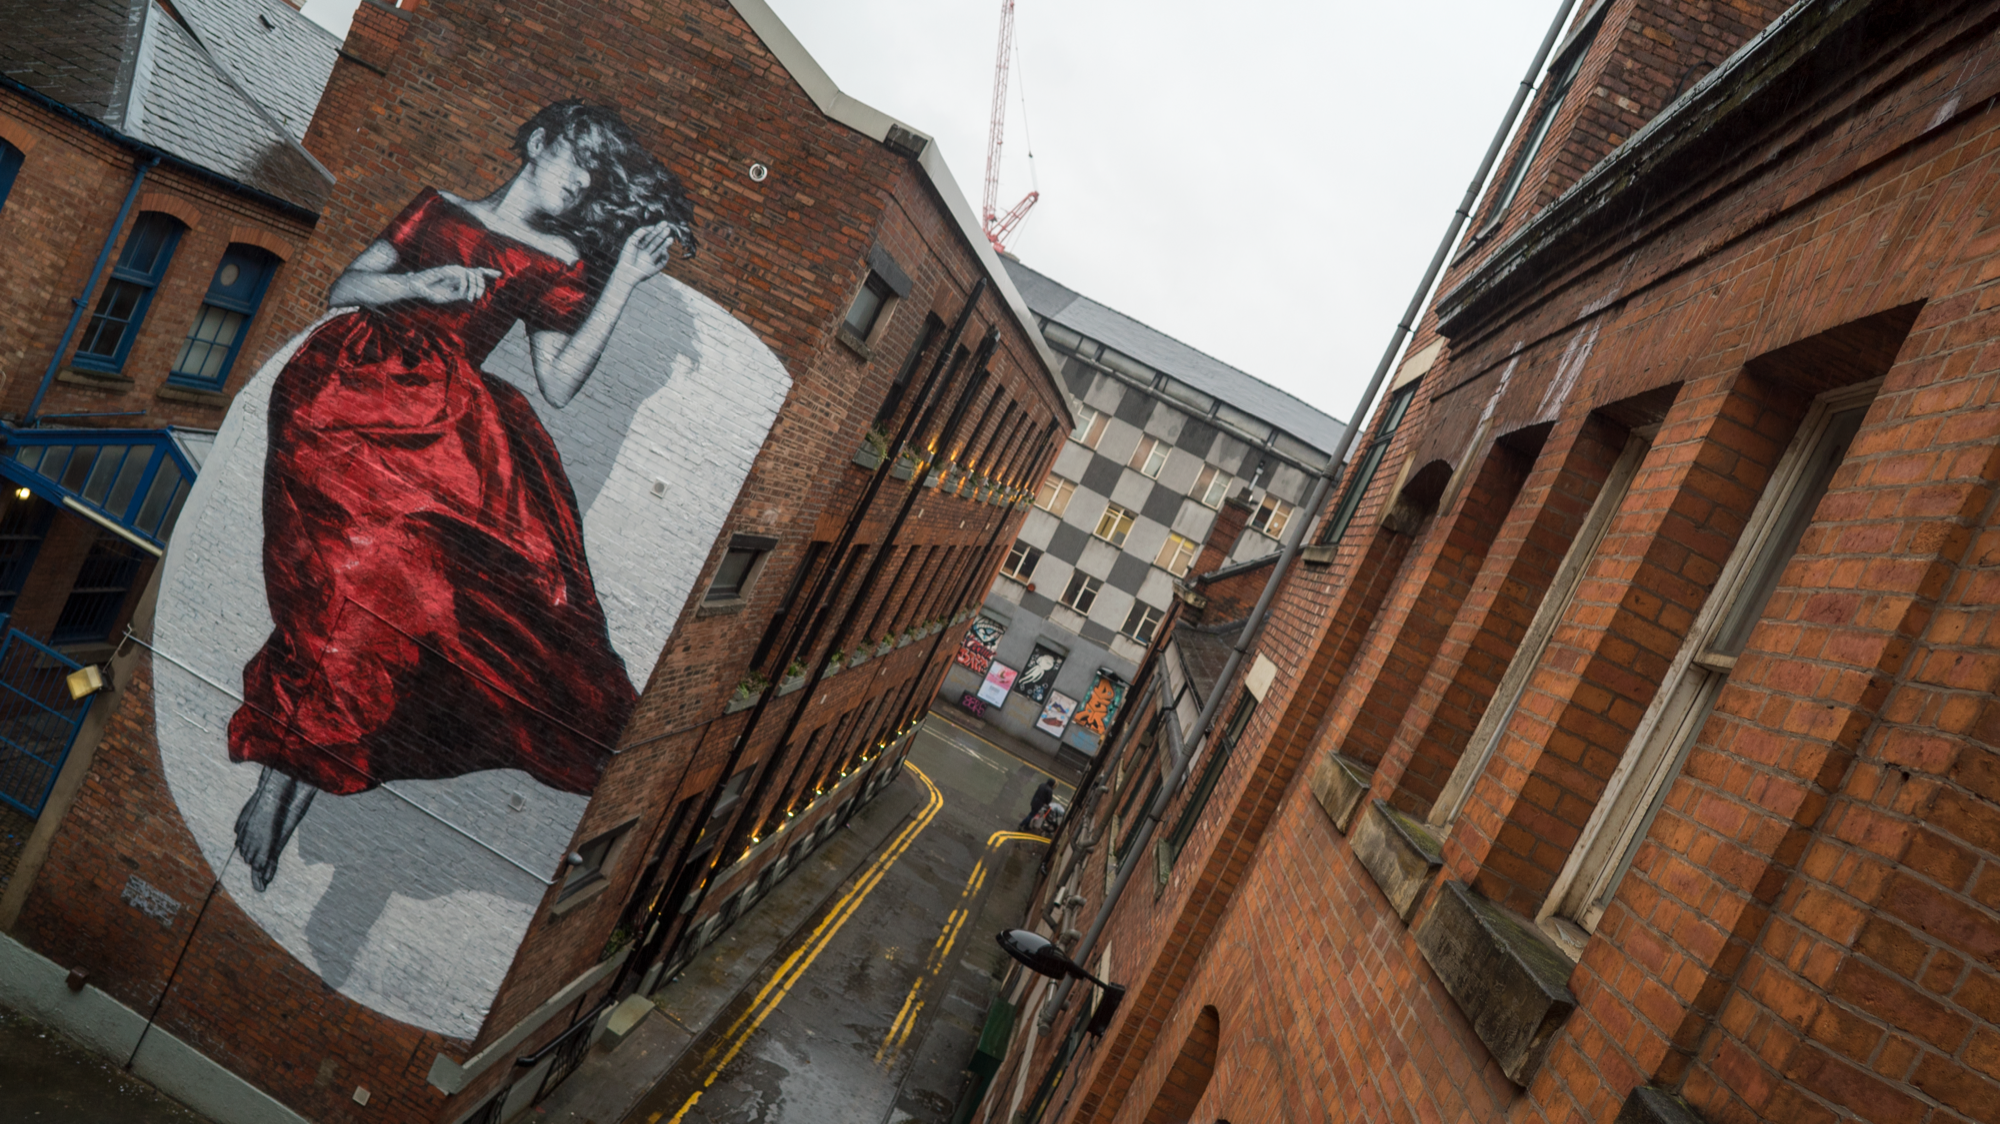 """Serenity"" by Snik in Manchester Artes & contextos DSC08660"